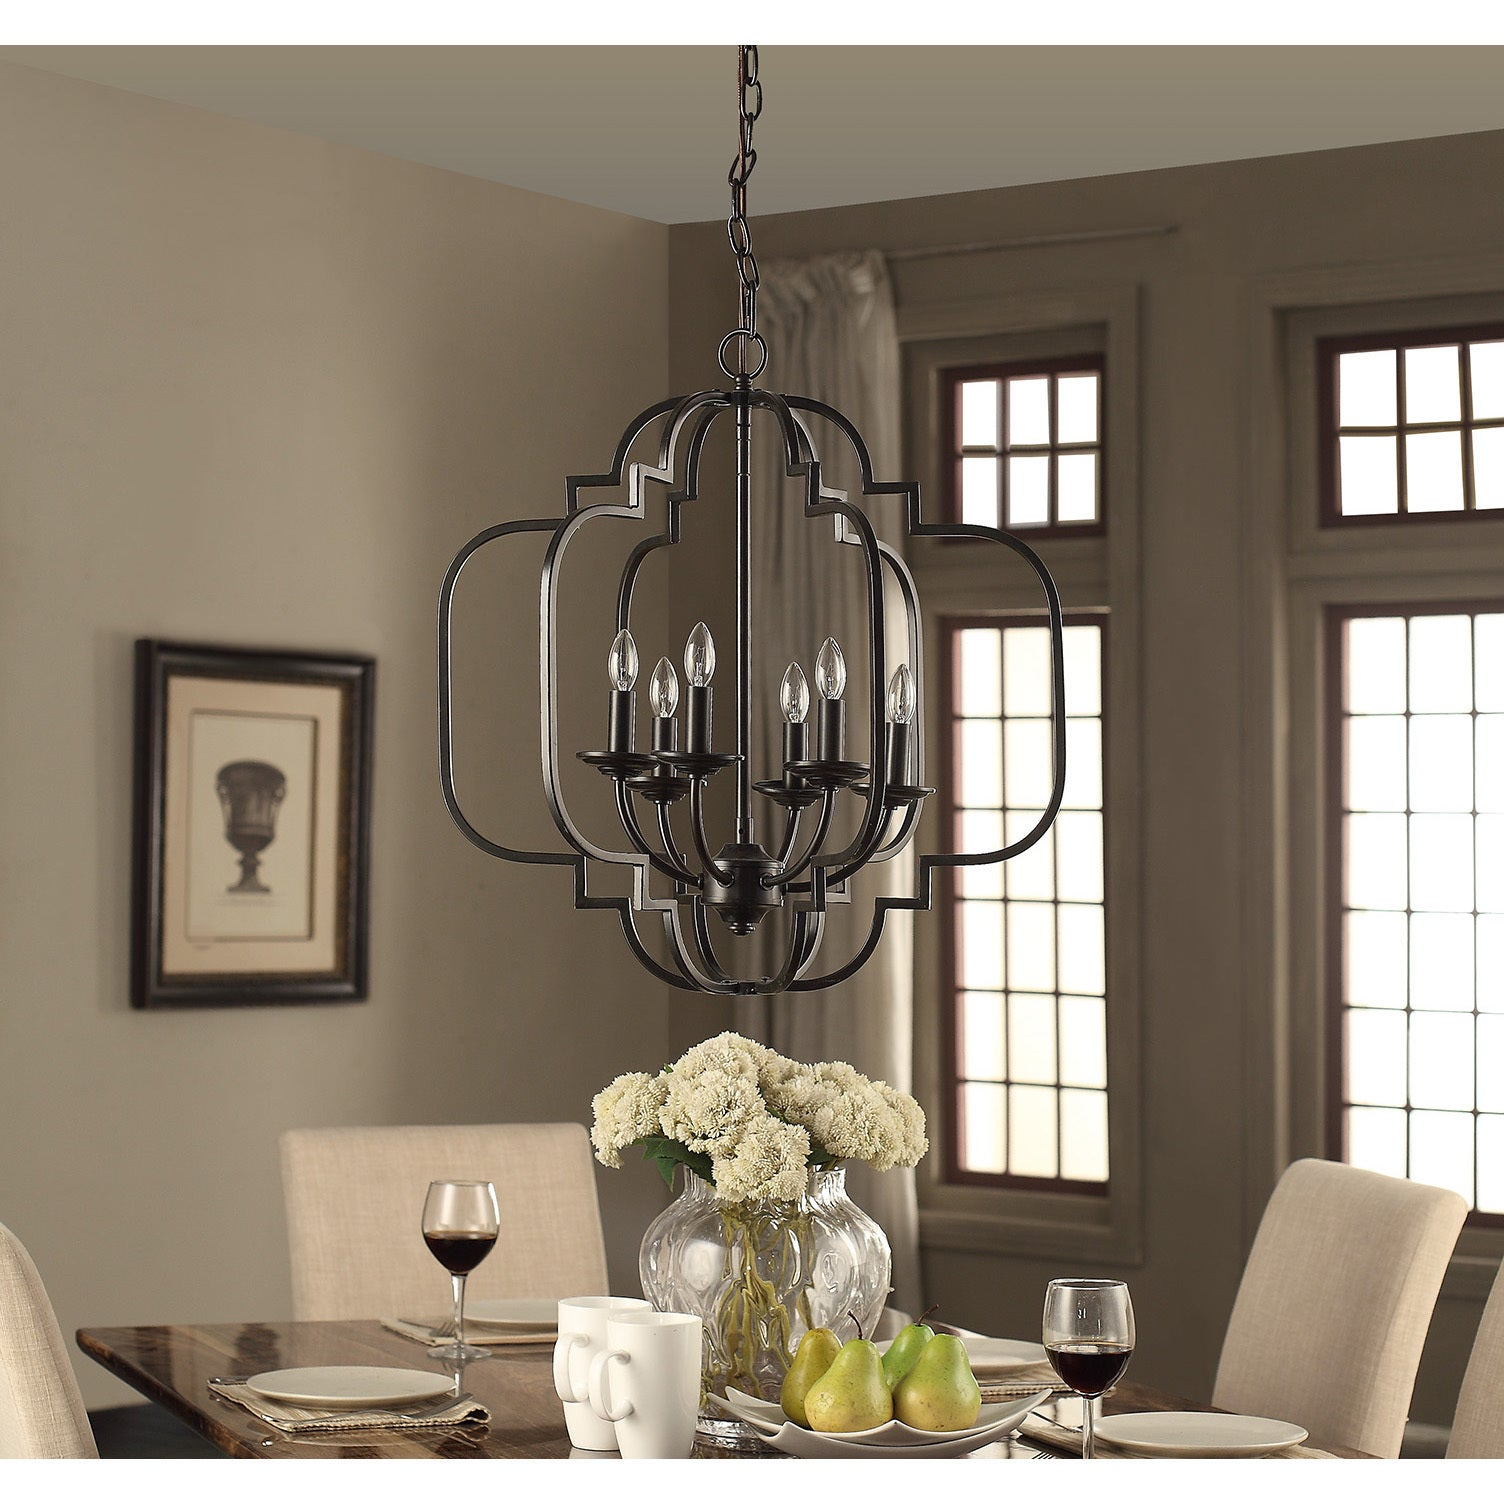 Moroccan 6 light dark bronze chandelier free shipping today moroccan 6 light dark bronze chandelier free shipping today overstock 18915727 mozeypictures Images